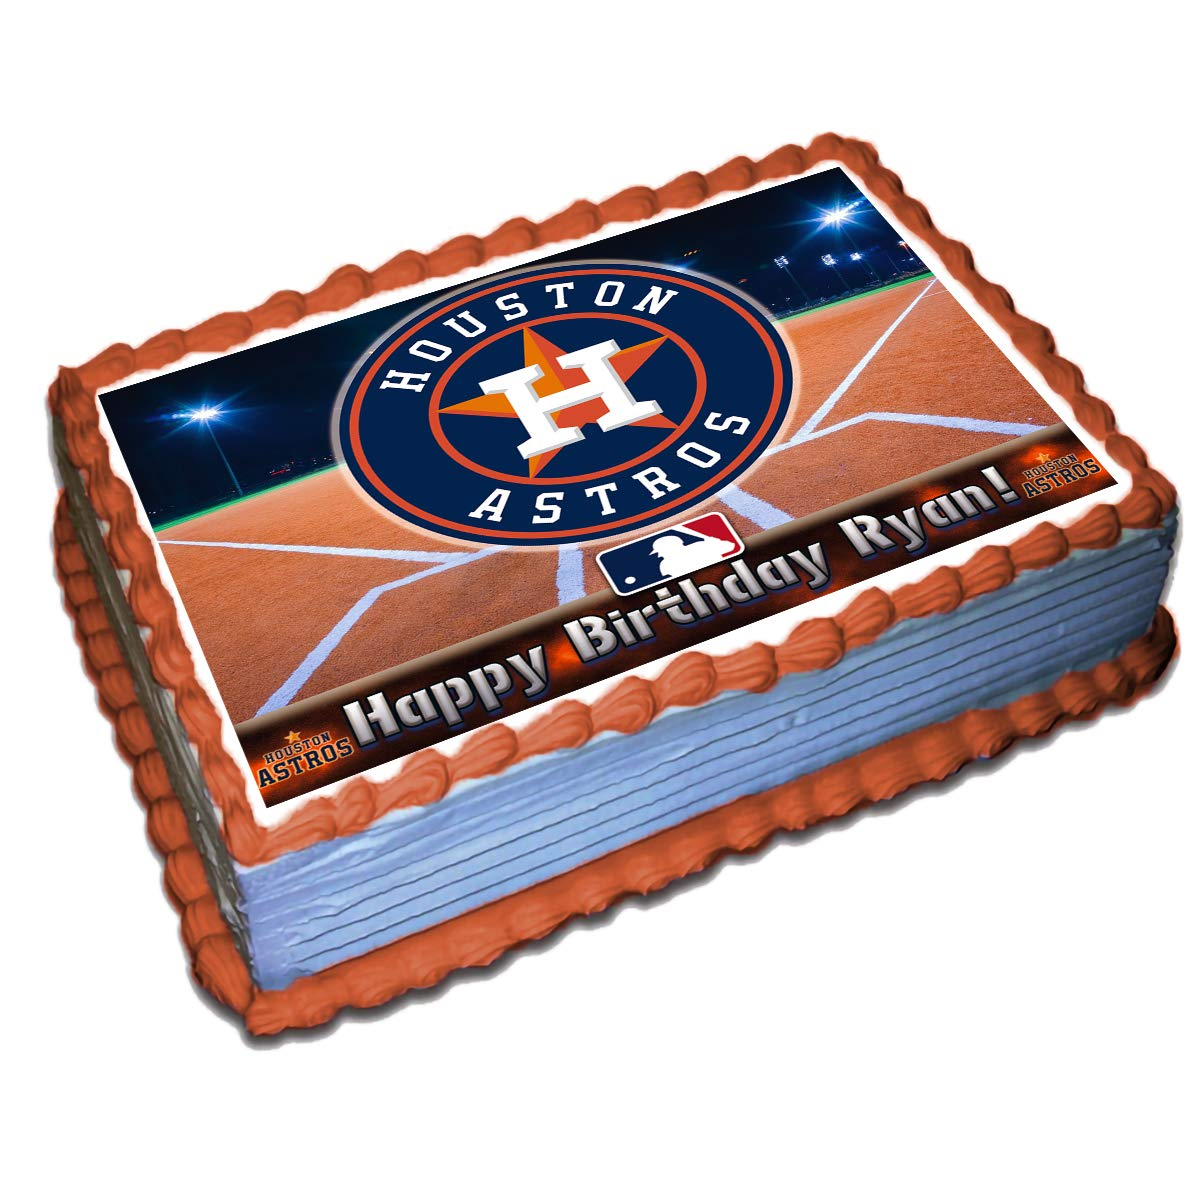 Enjoyable Houston Astros Mlb Personalized Cake Topper Icing Sugar Paper 1 4 Birthday Cards Printable Nowaargucafe Filternl